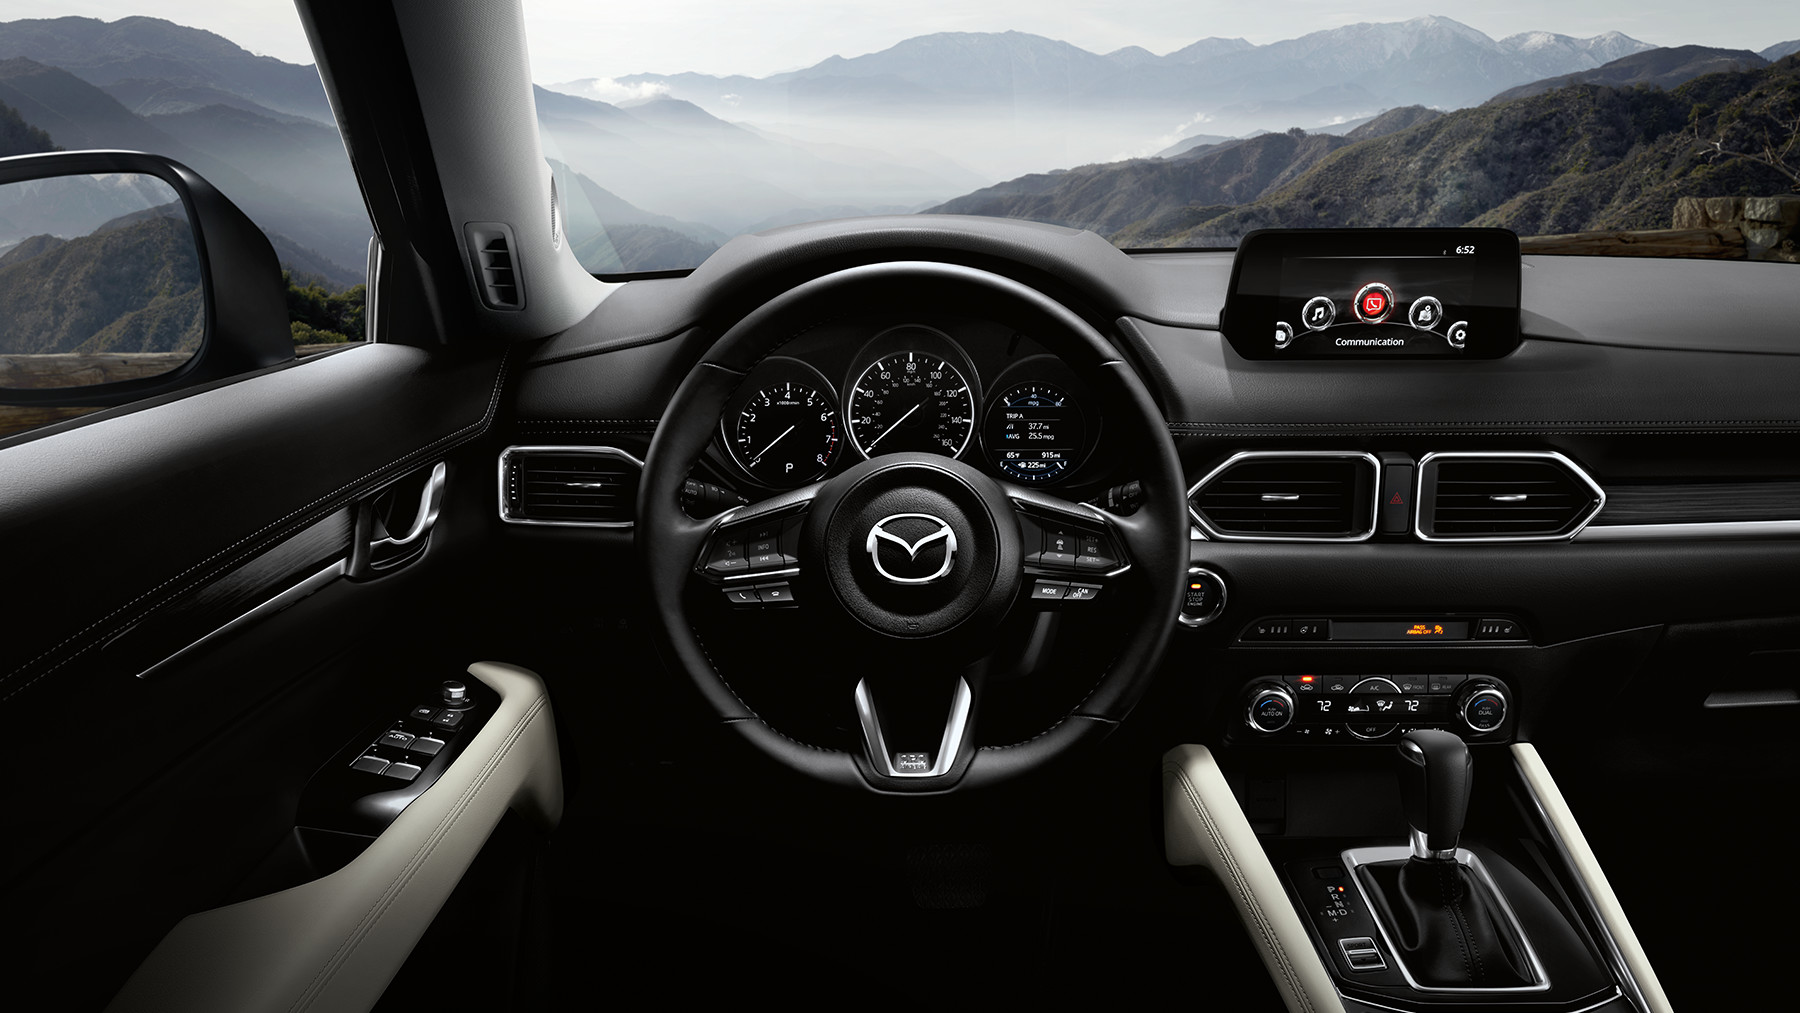 Mazda 3 Owners Manual: Interior Features